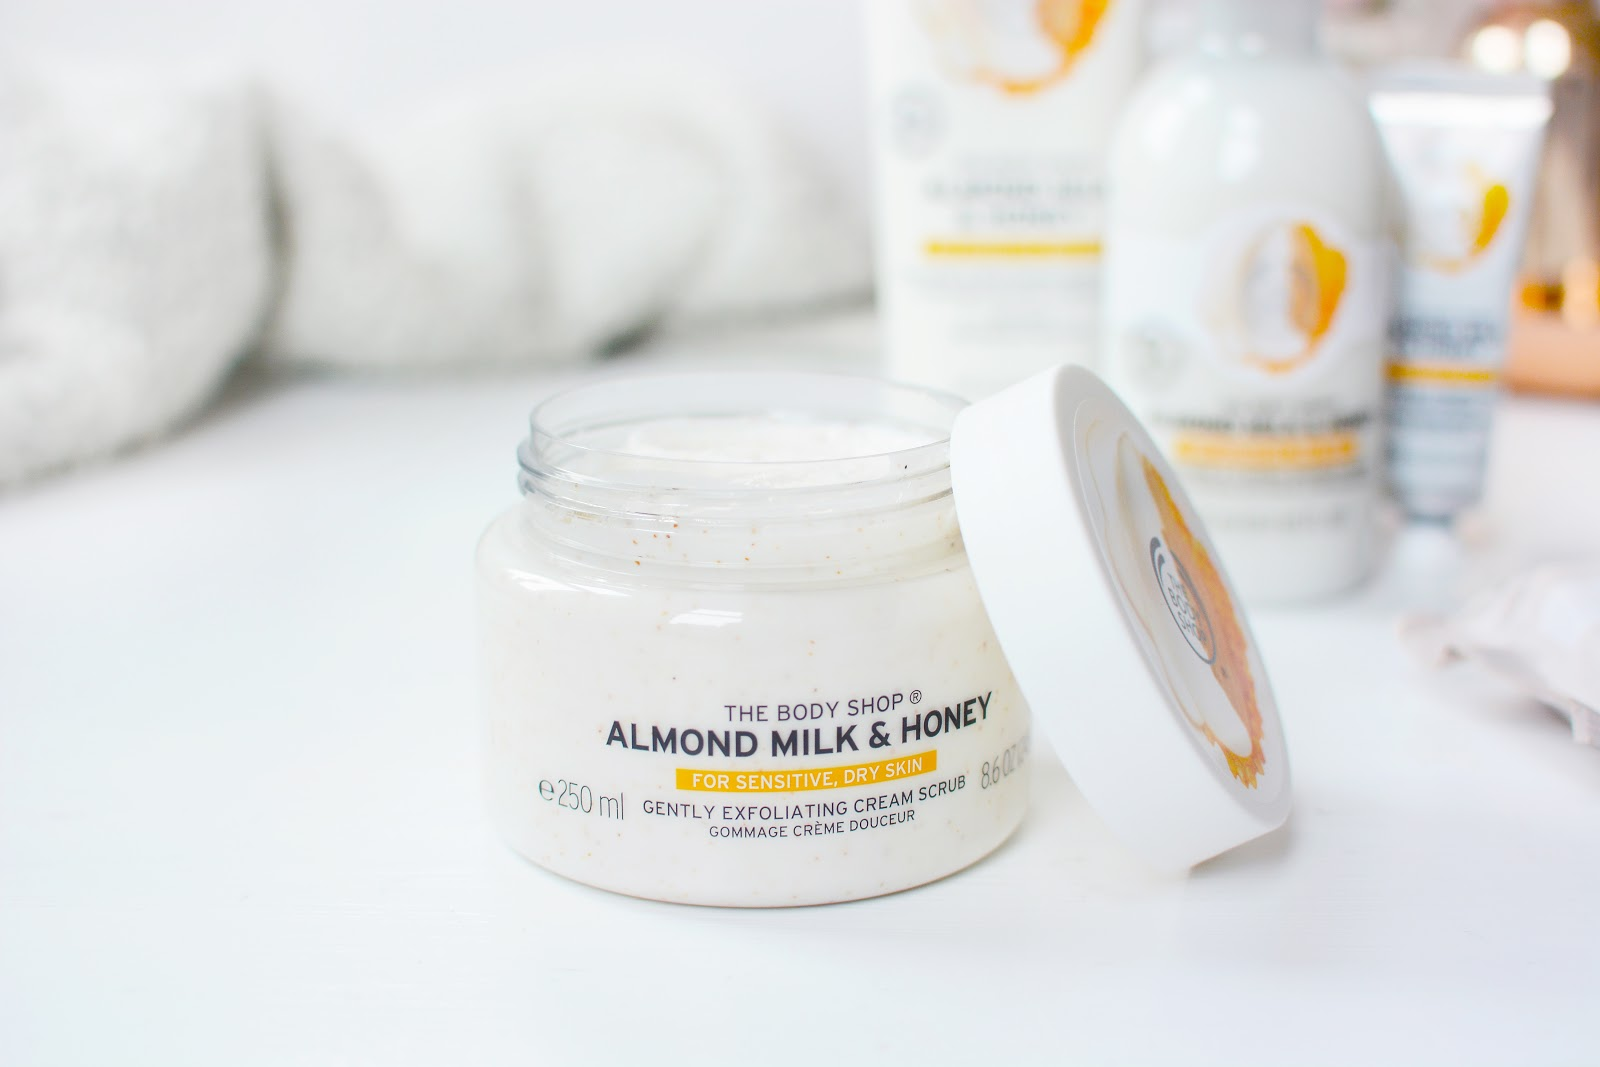 The Body Shop Almond Milk & Honey Collection For Dry, Sensitive Skin